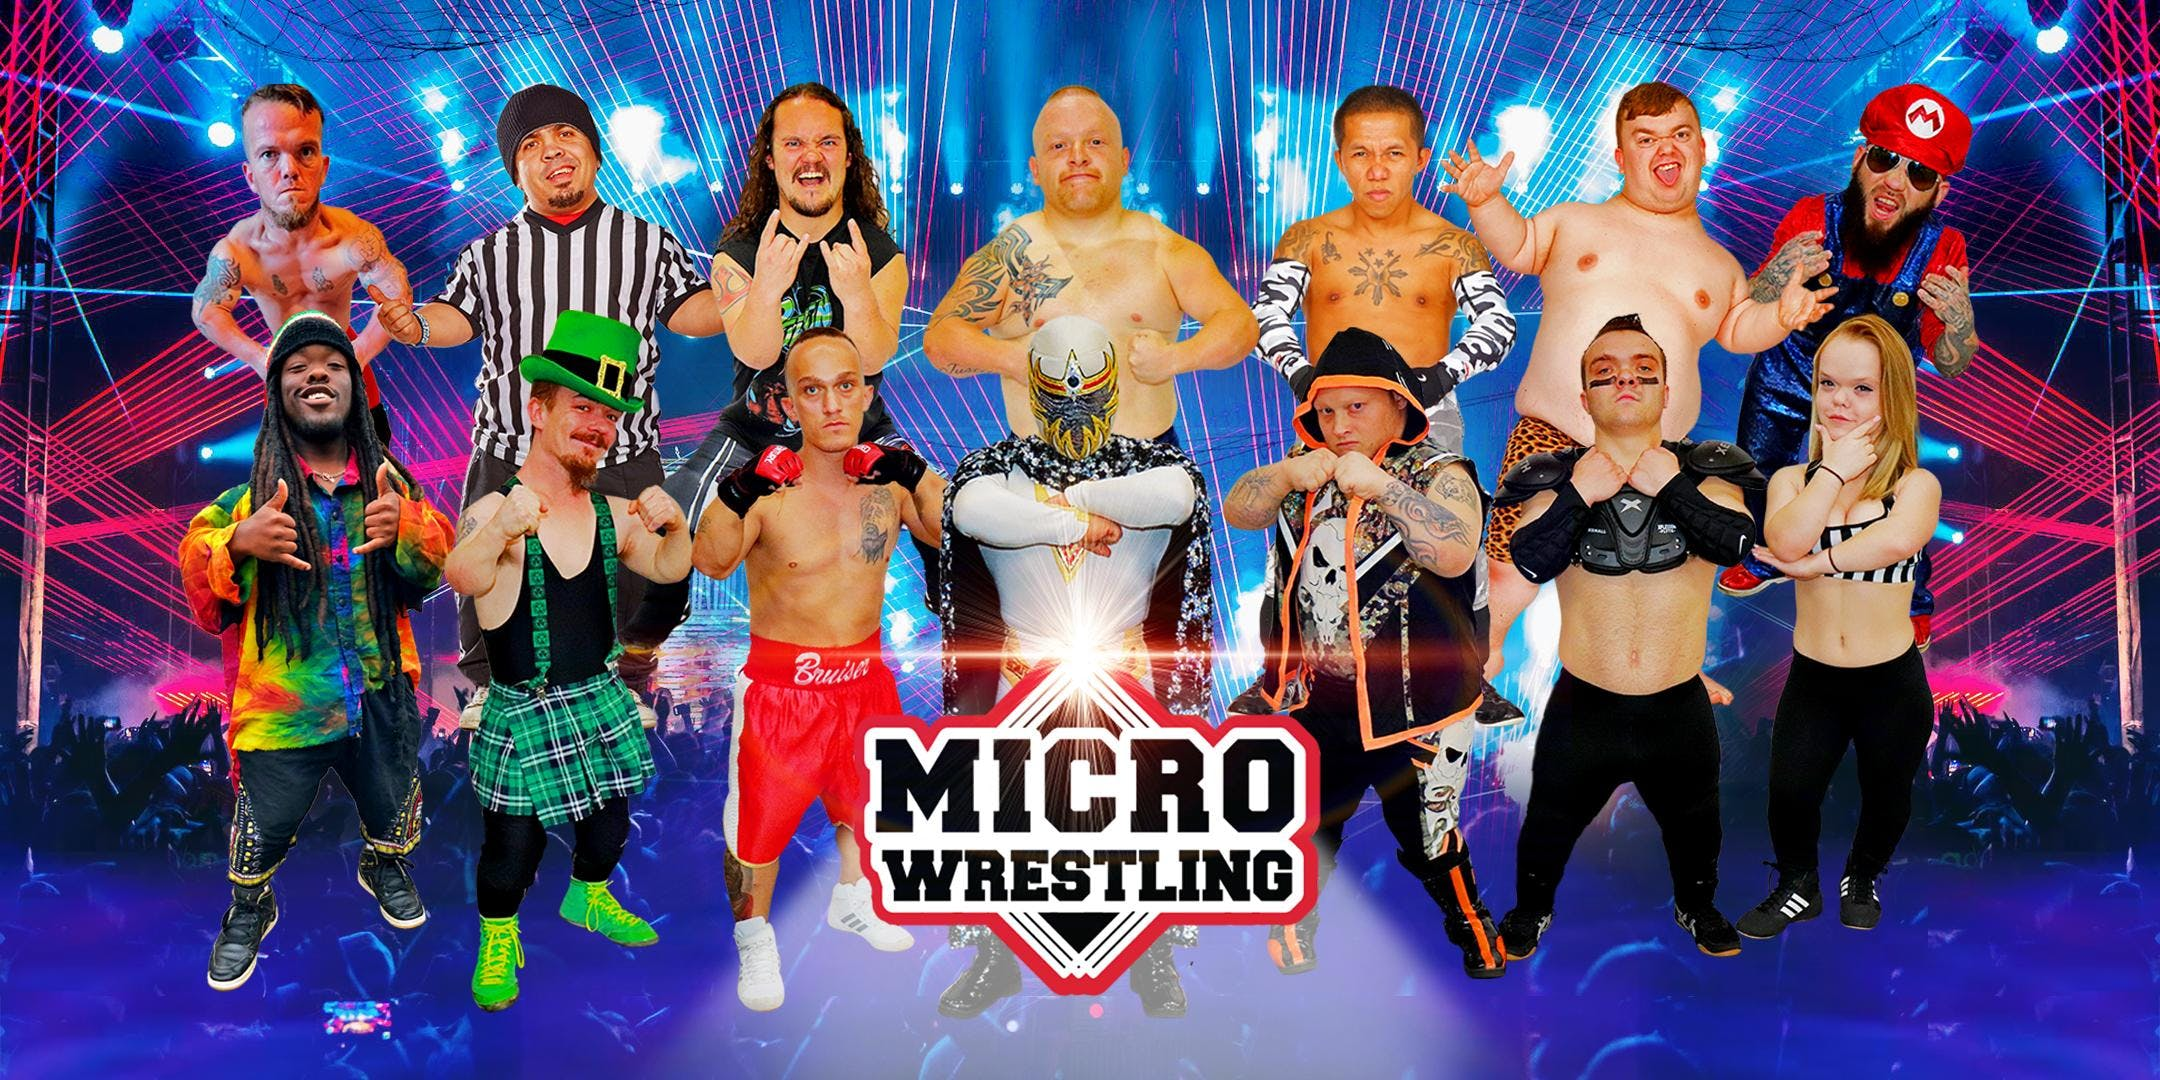 All-Ages Micro Wrestling at the Microtorium of Pigeon Forge!